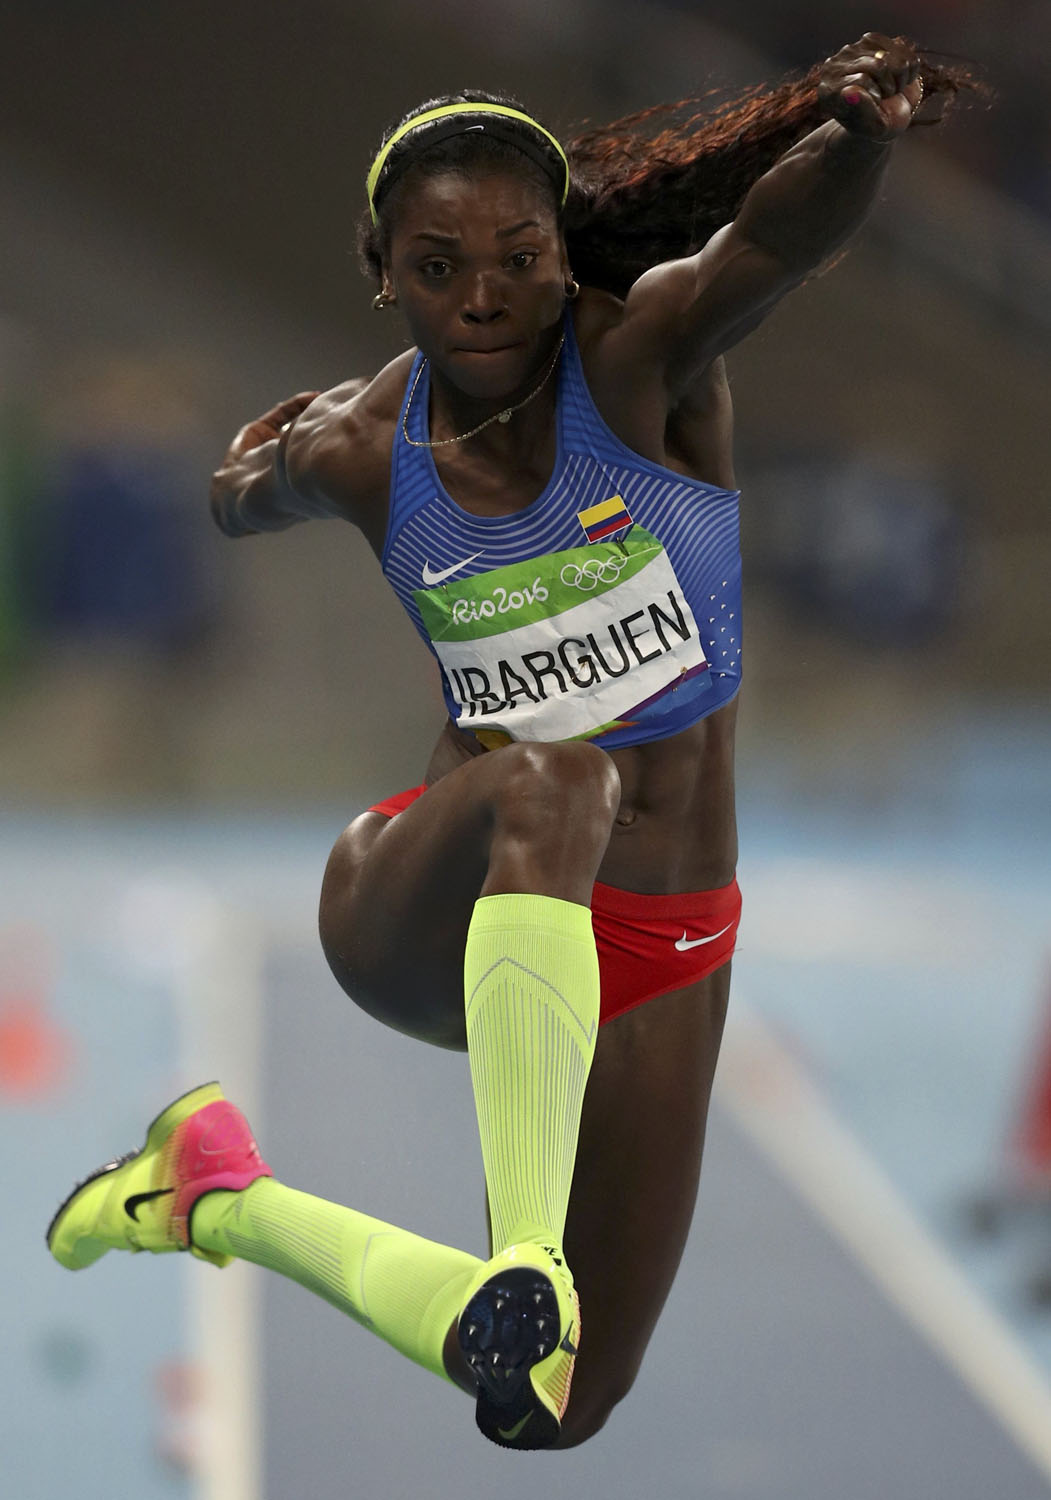 2016 Rio Olympics - Athletics - Final - Women's Triple Jump Final - Olympic Stadium - Rio de Janeiro, Brazil - 14/08/2016.   Caterine Ibarguen (COL) of Colombia competes. REUTERS/Phil Noble  FOR EDITORIAL USE ONLY. NOT FOR SALE FOR MARKETING OR ADVERTISING CAMPAIGNS.